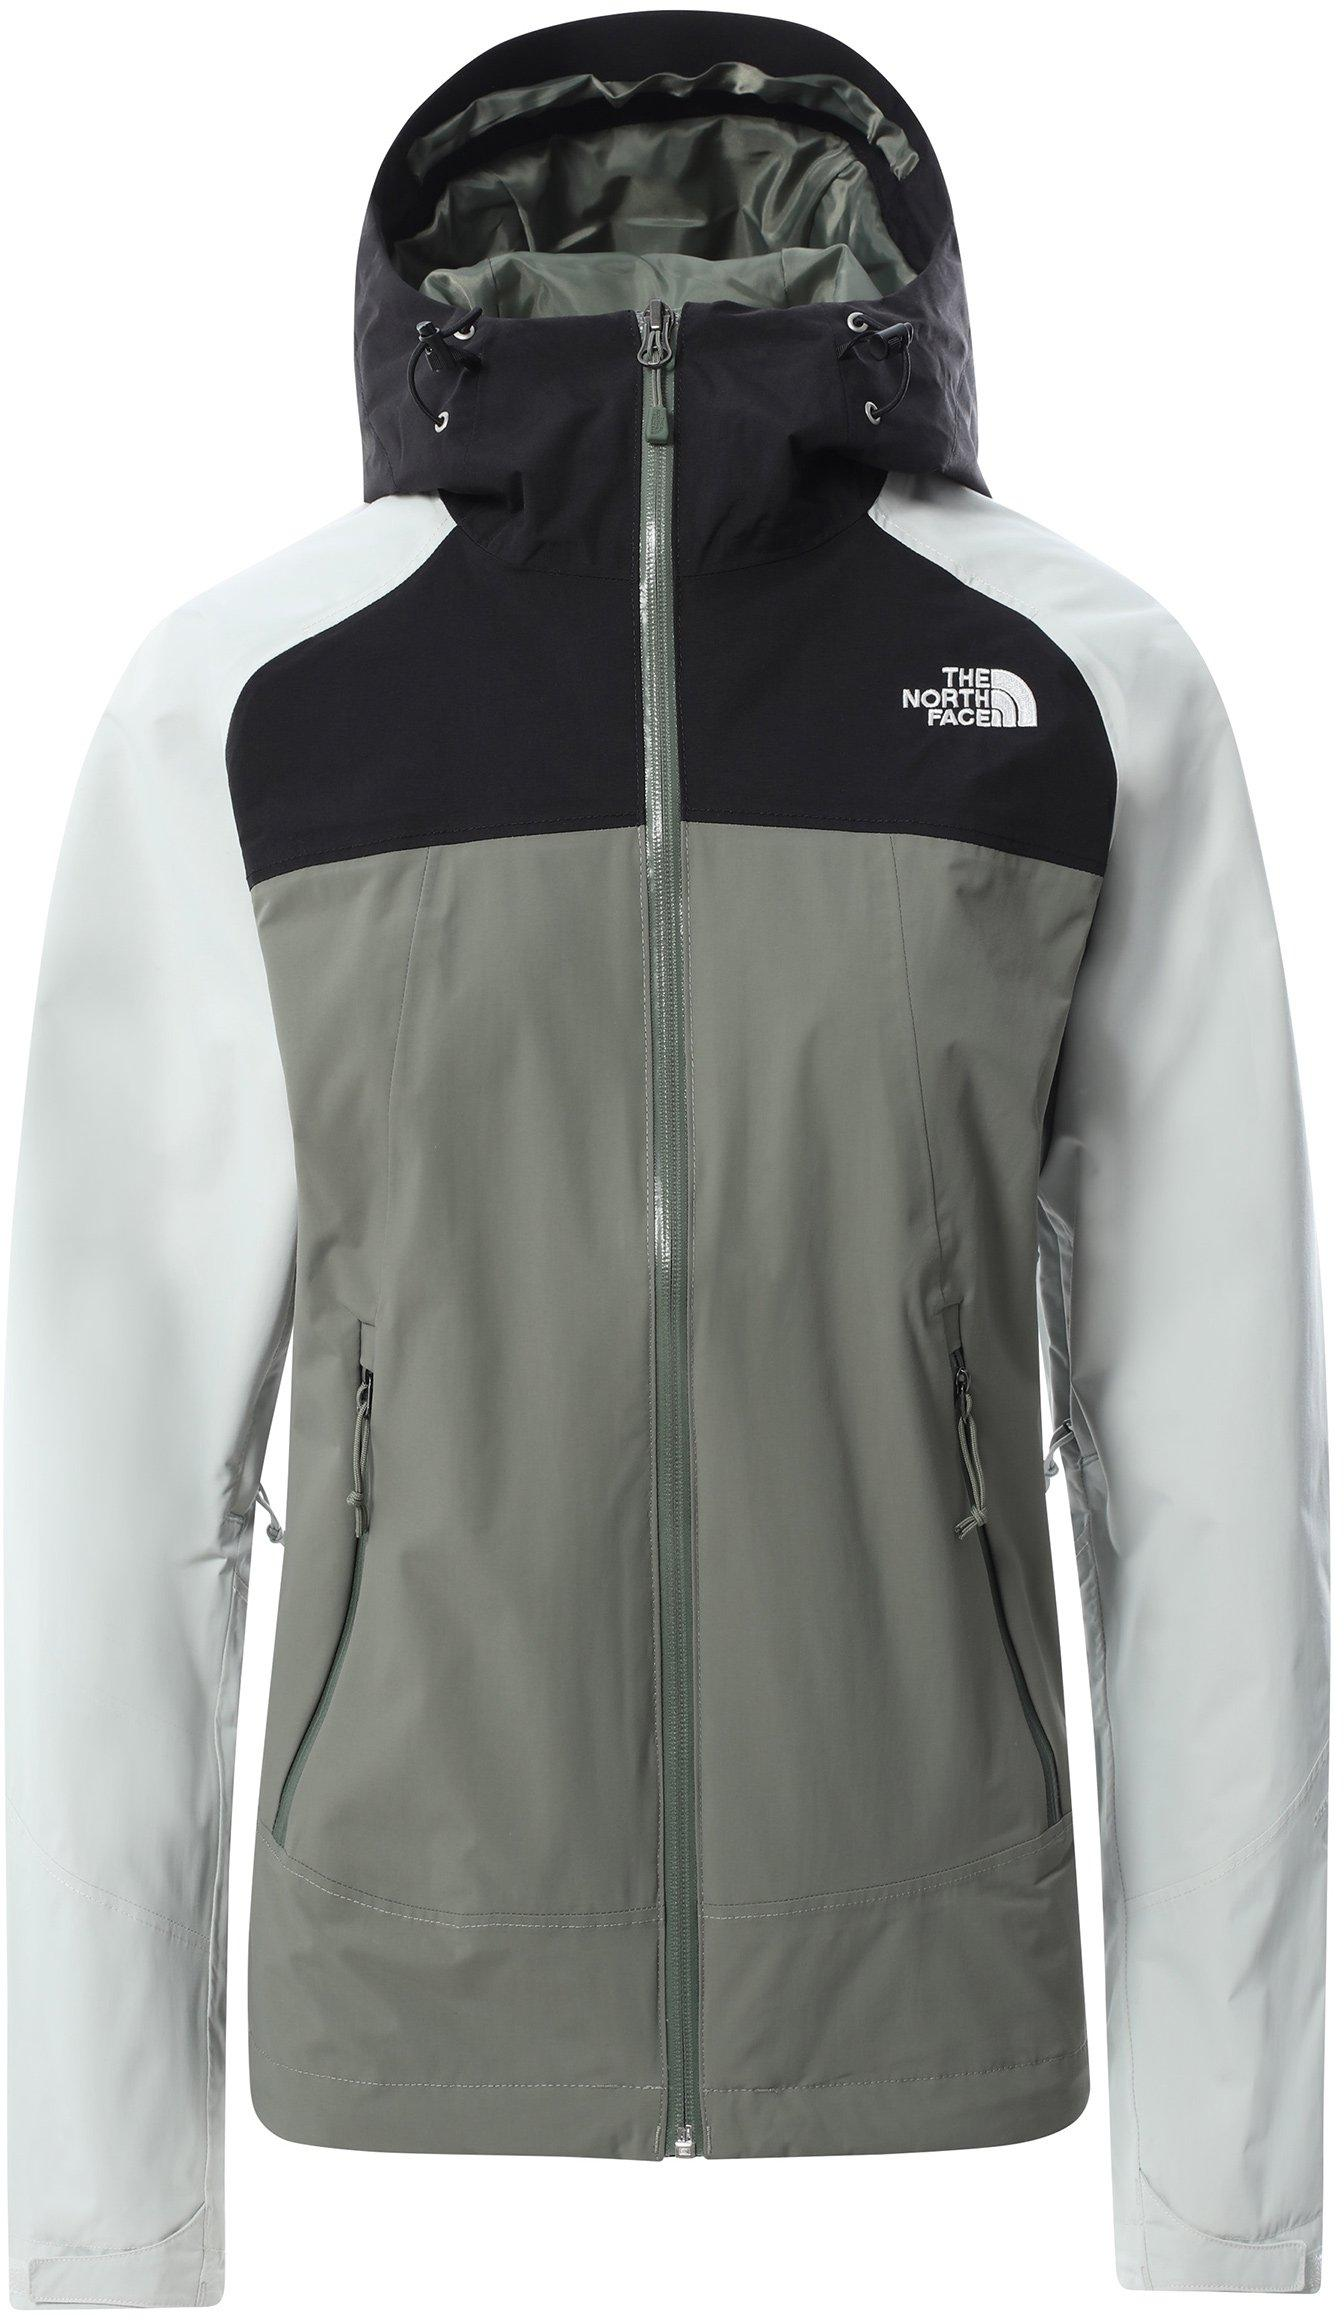 The North Face Women's Stratos Jacket XS